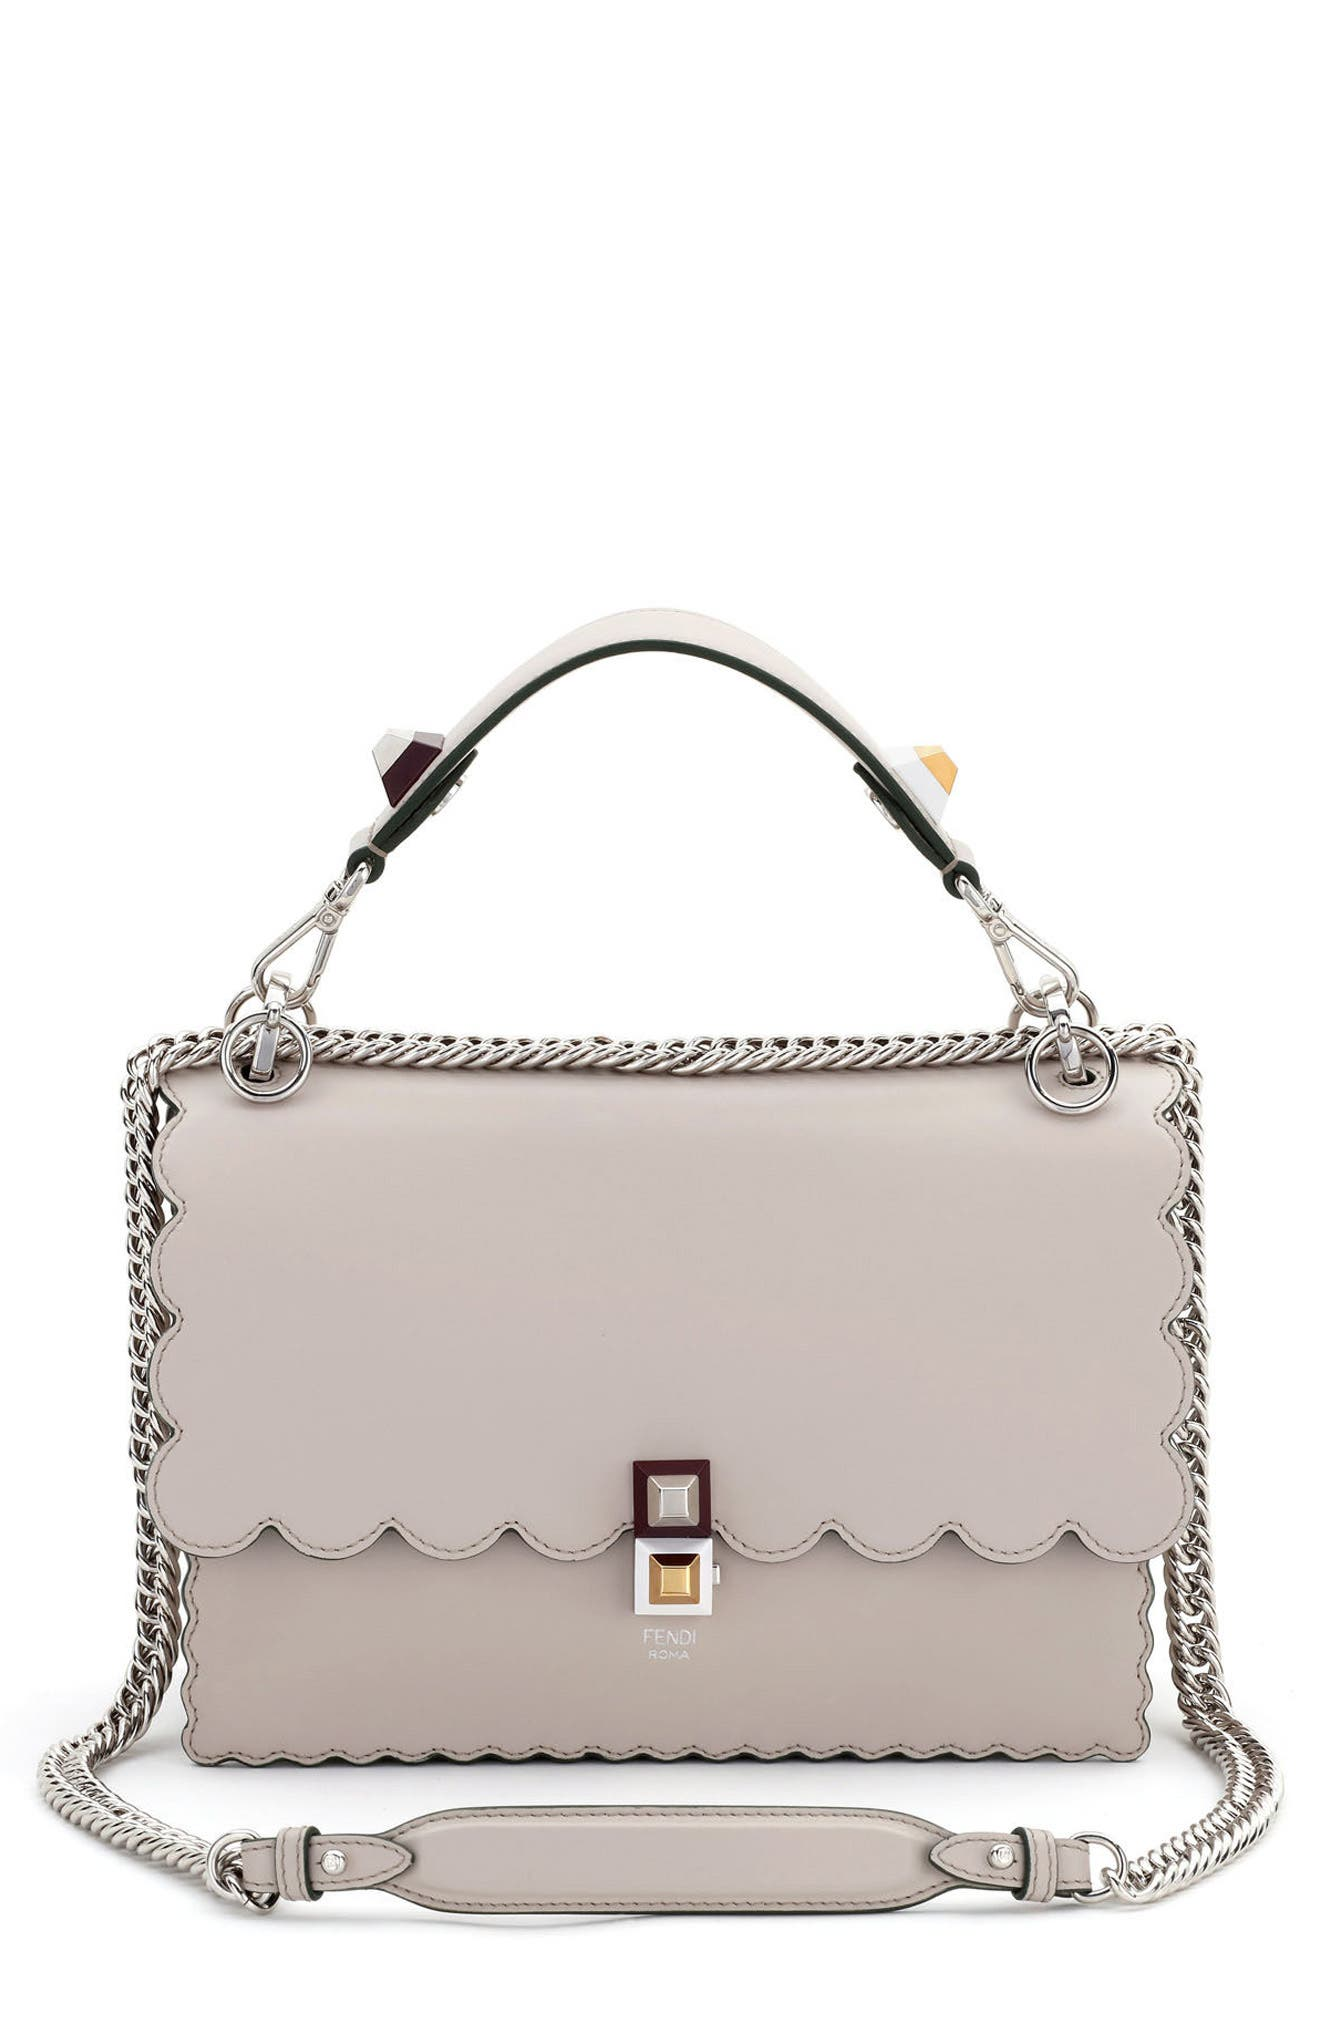 Alternate Image 1 Selected - Fendi Kan I Scallop Leather Shoulder Bag